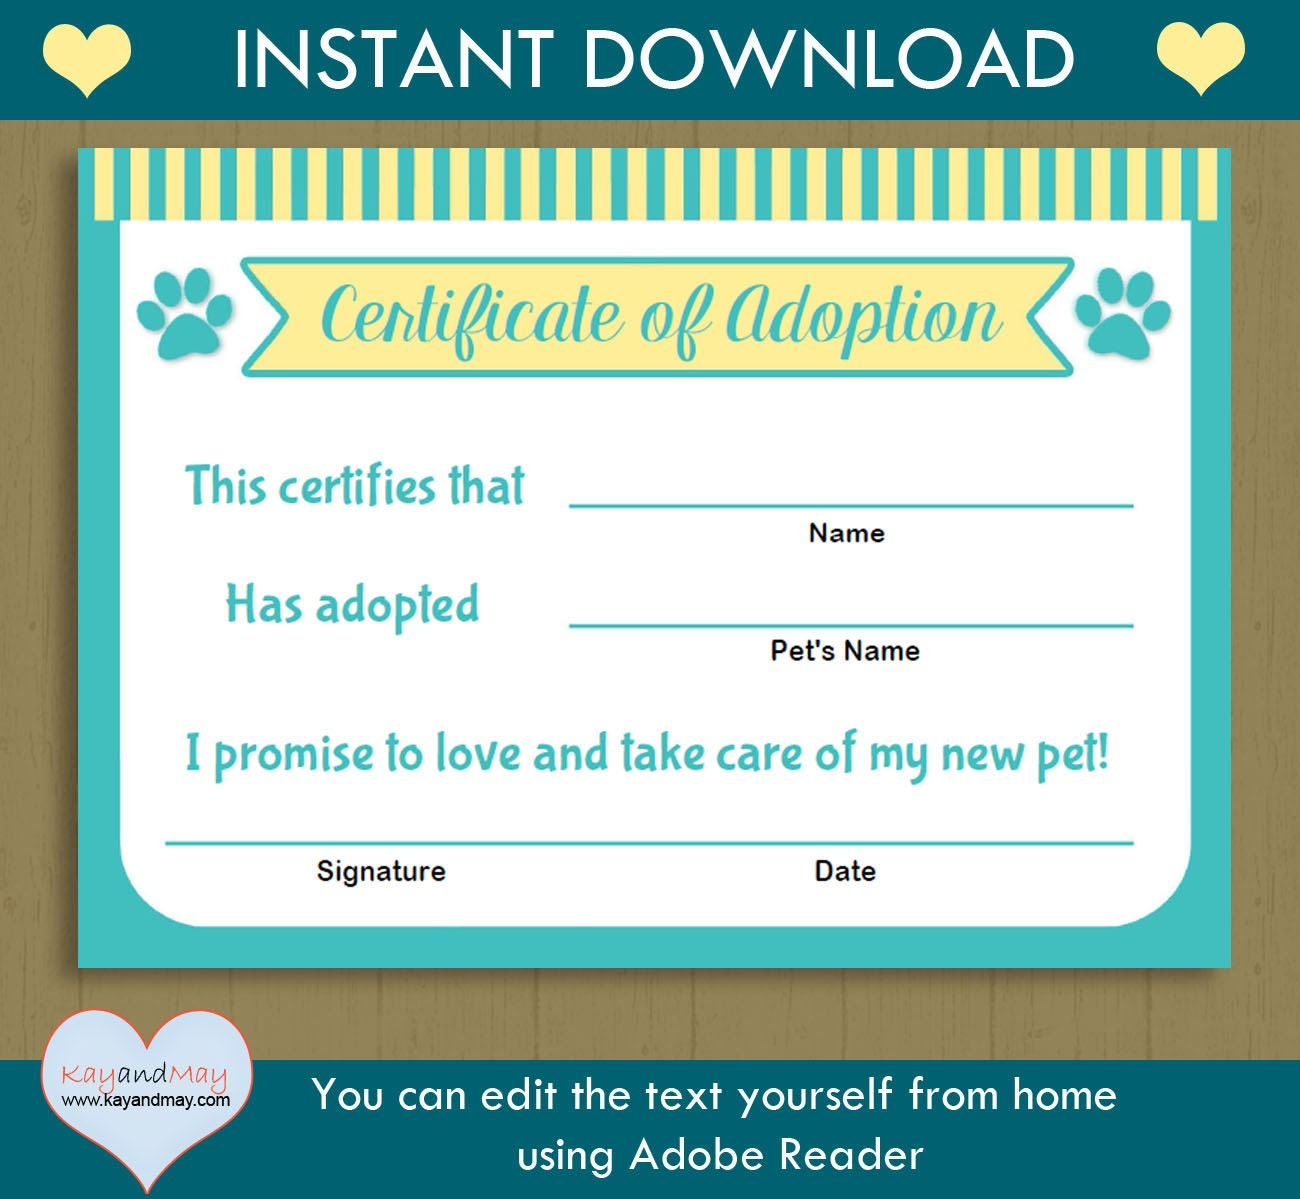 pet adoption certificate instant download printable pet. Black Bedroom Furniture Sets. Home Design Ideas